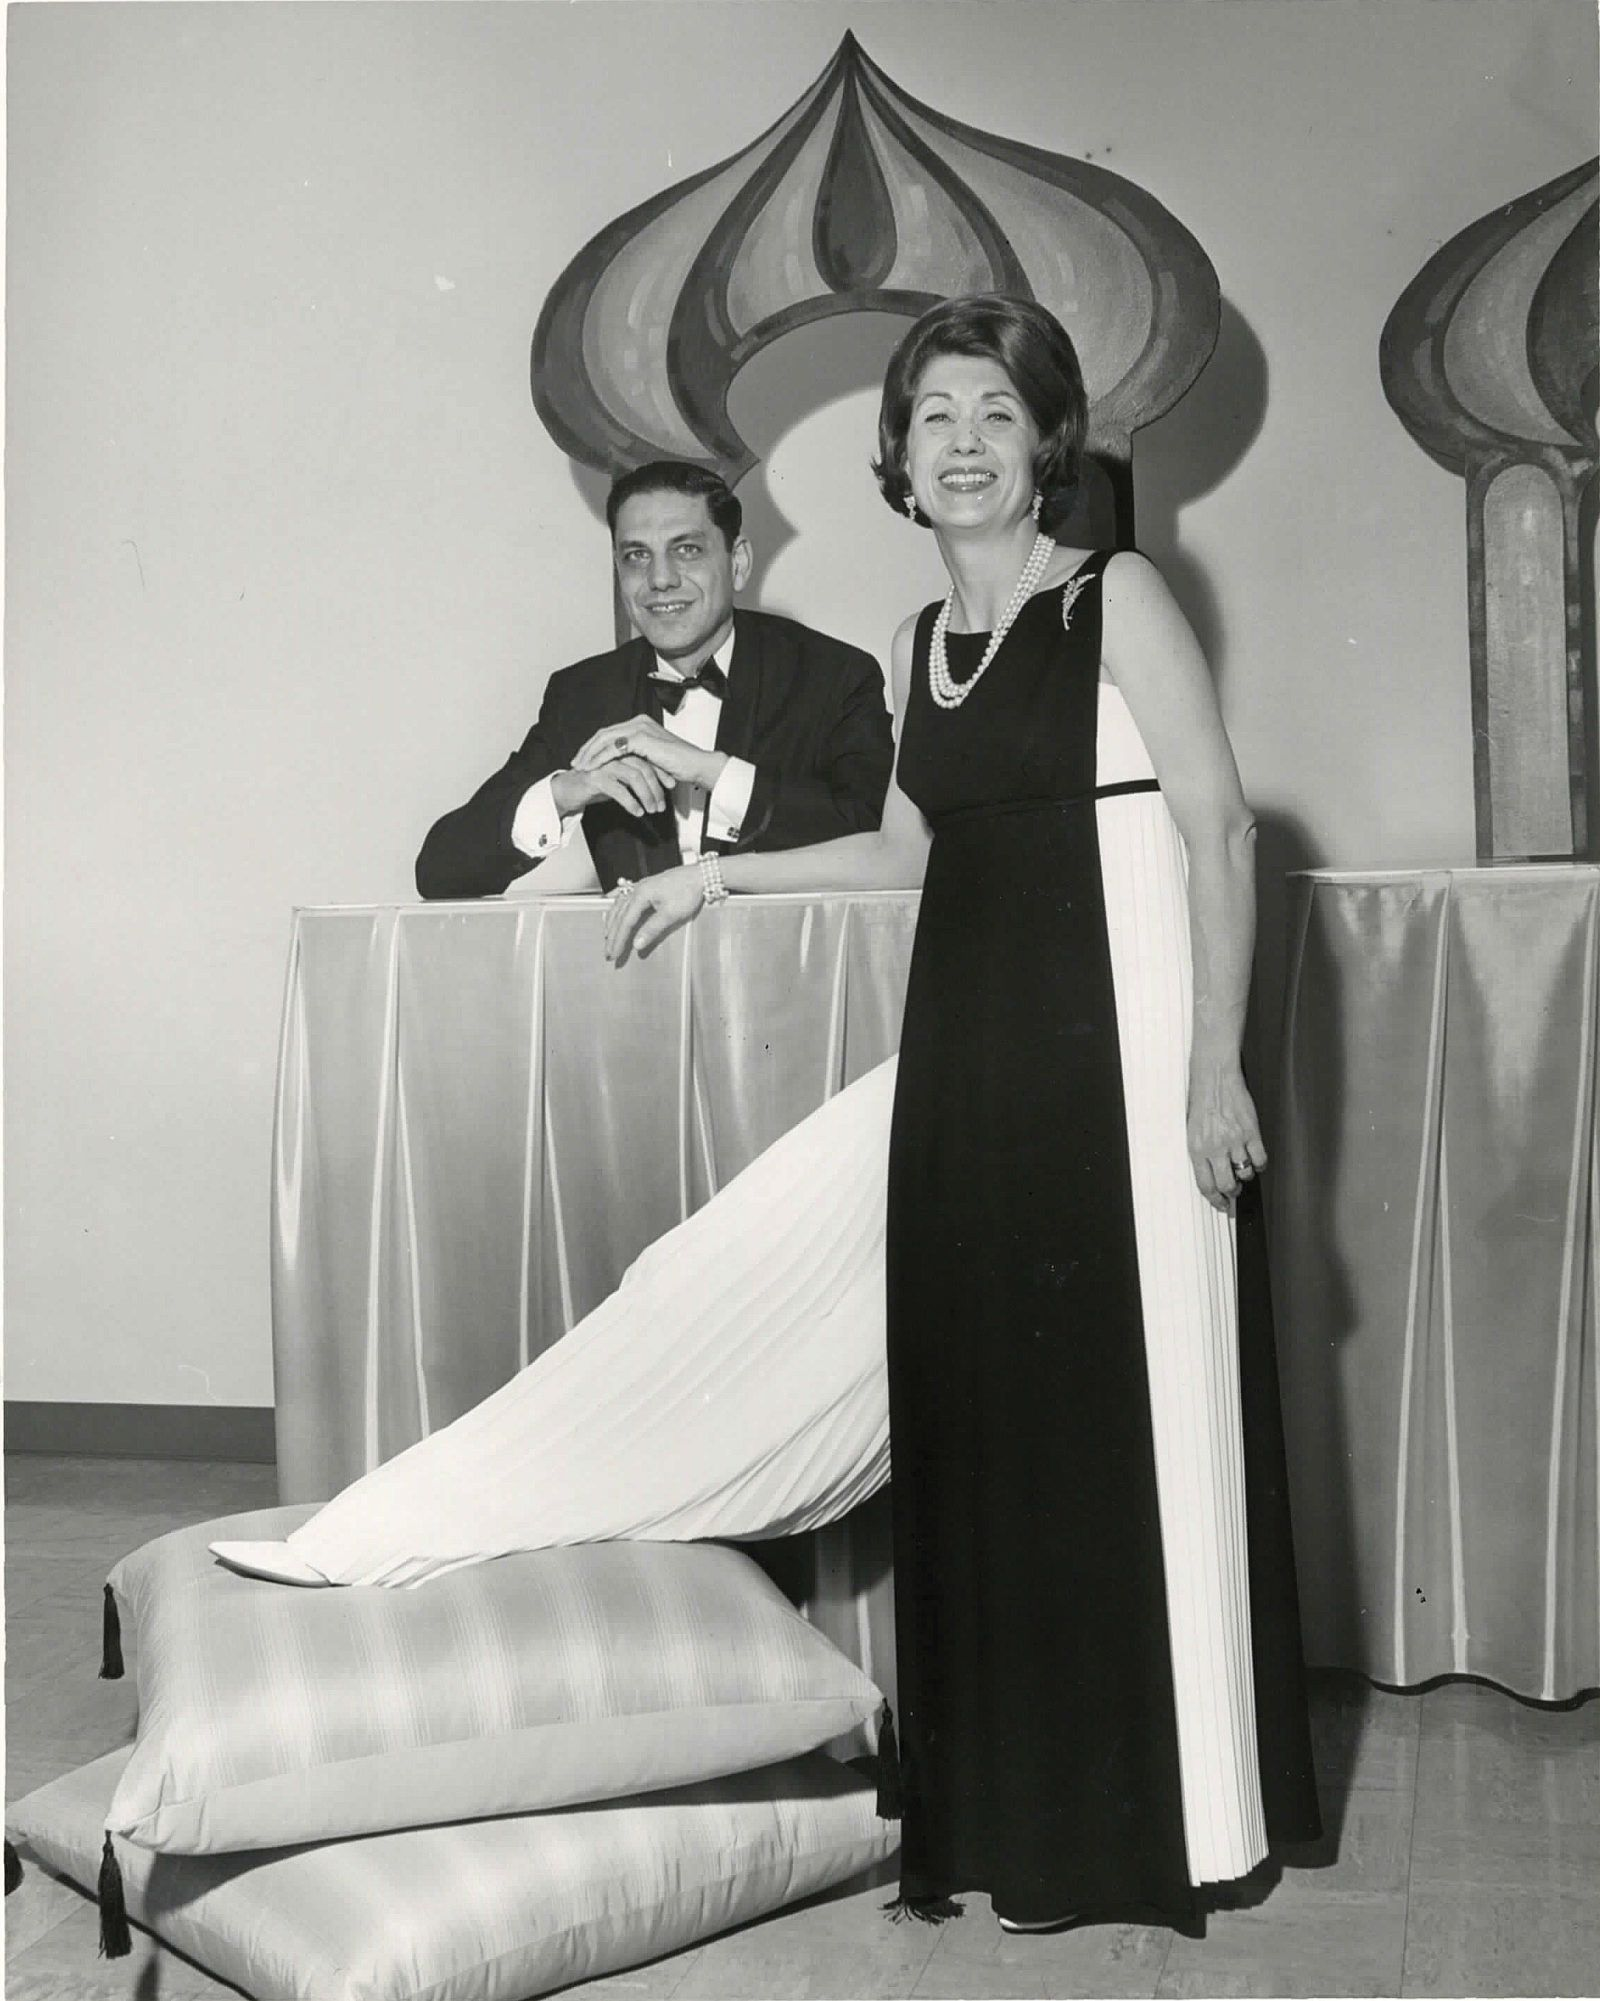 The founders of Eiseman Jewels, Dick and Louise Eiseman, posed for an infomercial about the Fine Arts Ball in 1967, which was themed on the Thousand and One Nights.